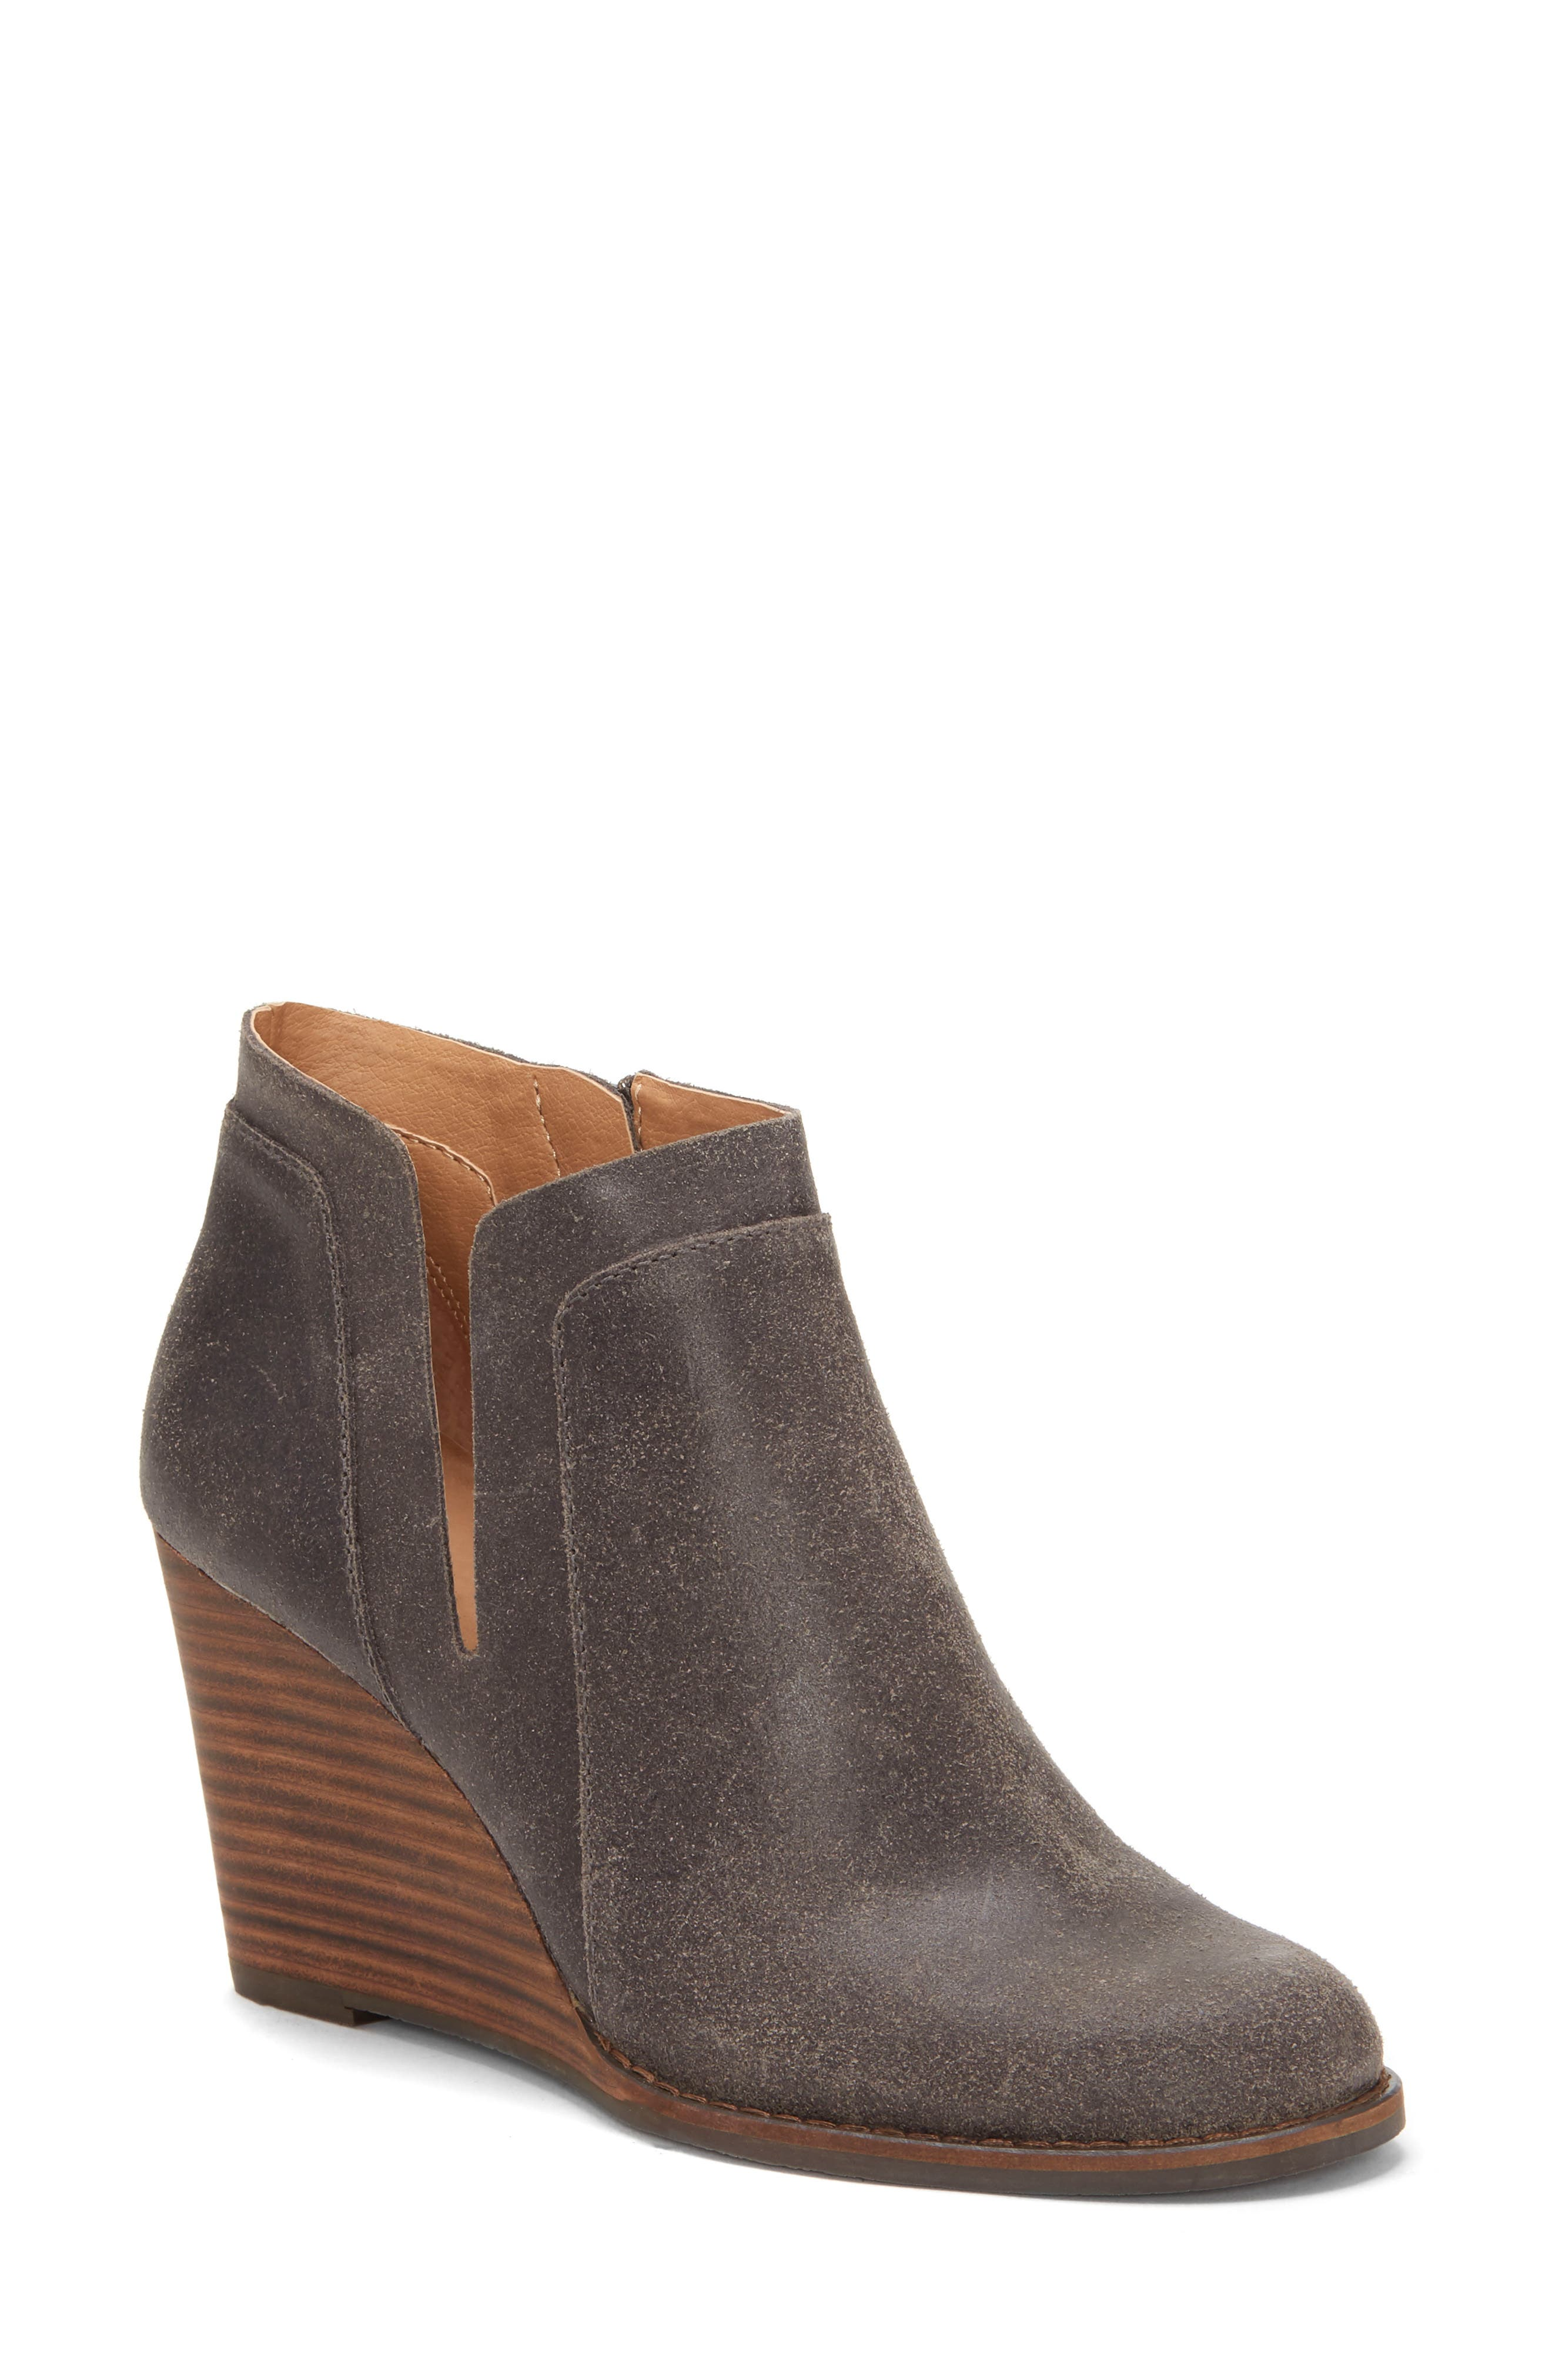 LUCKY BRAND Yabba Wedge Bootie, Main, color, STORM NUBUCK